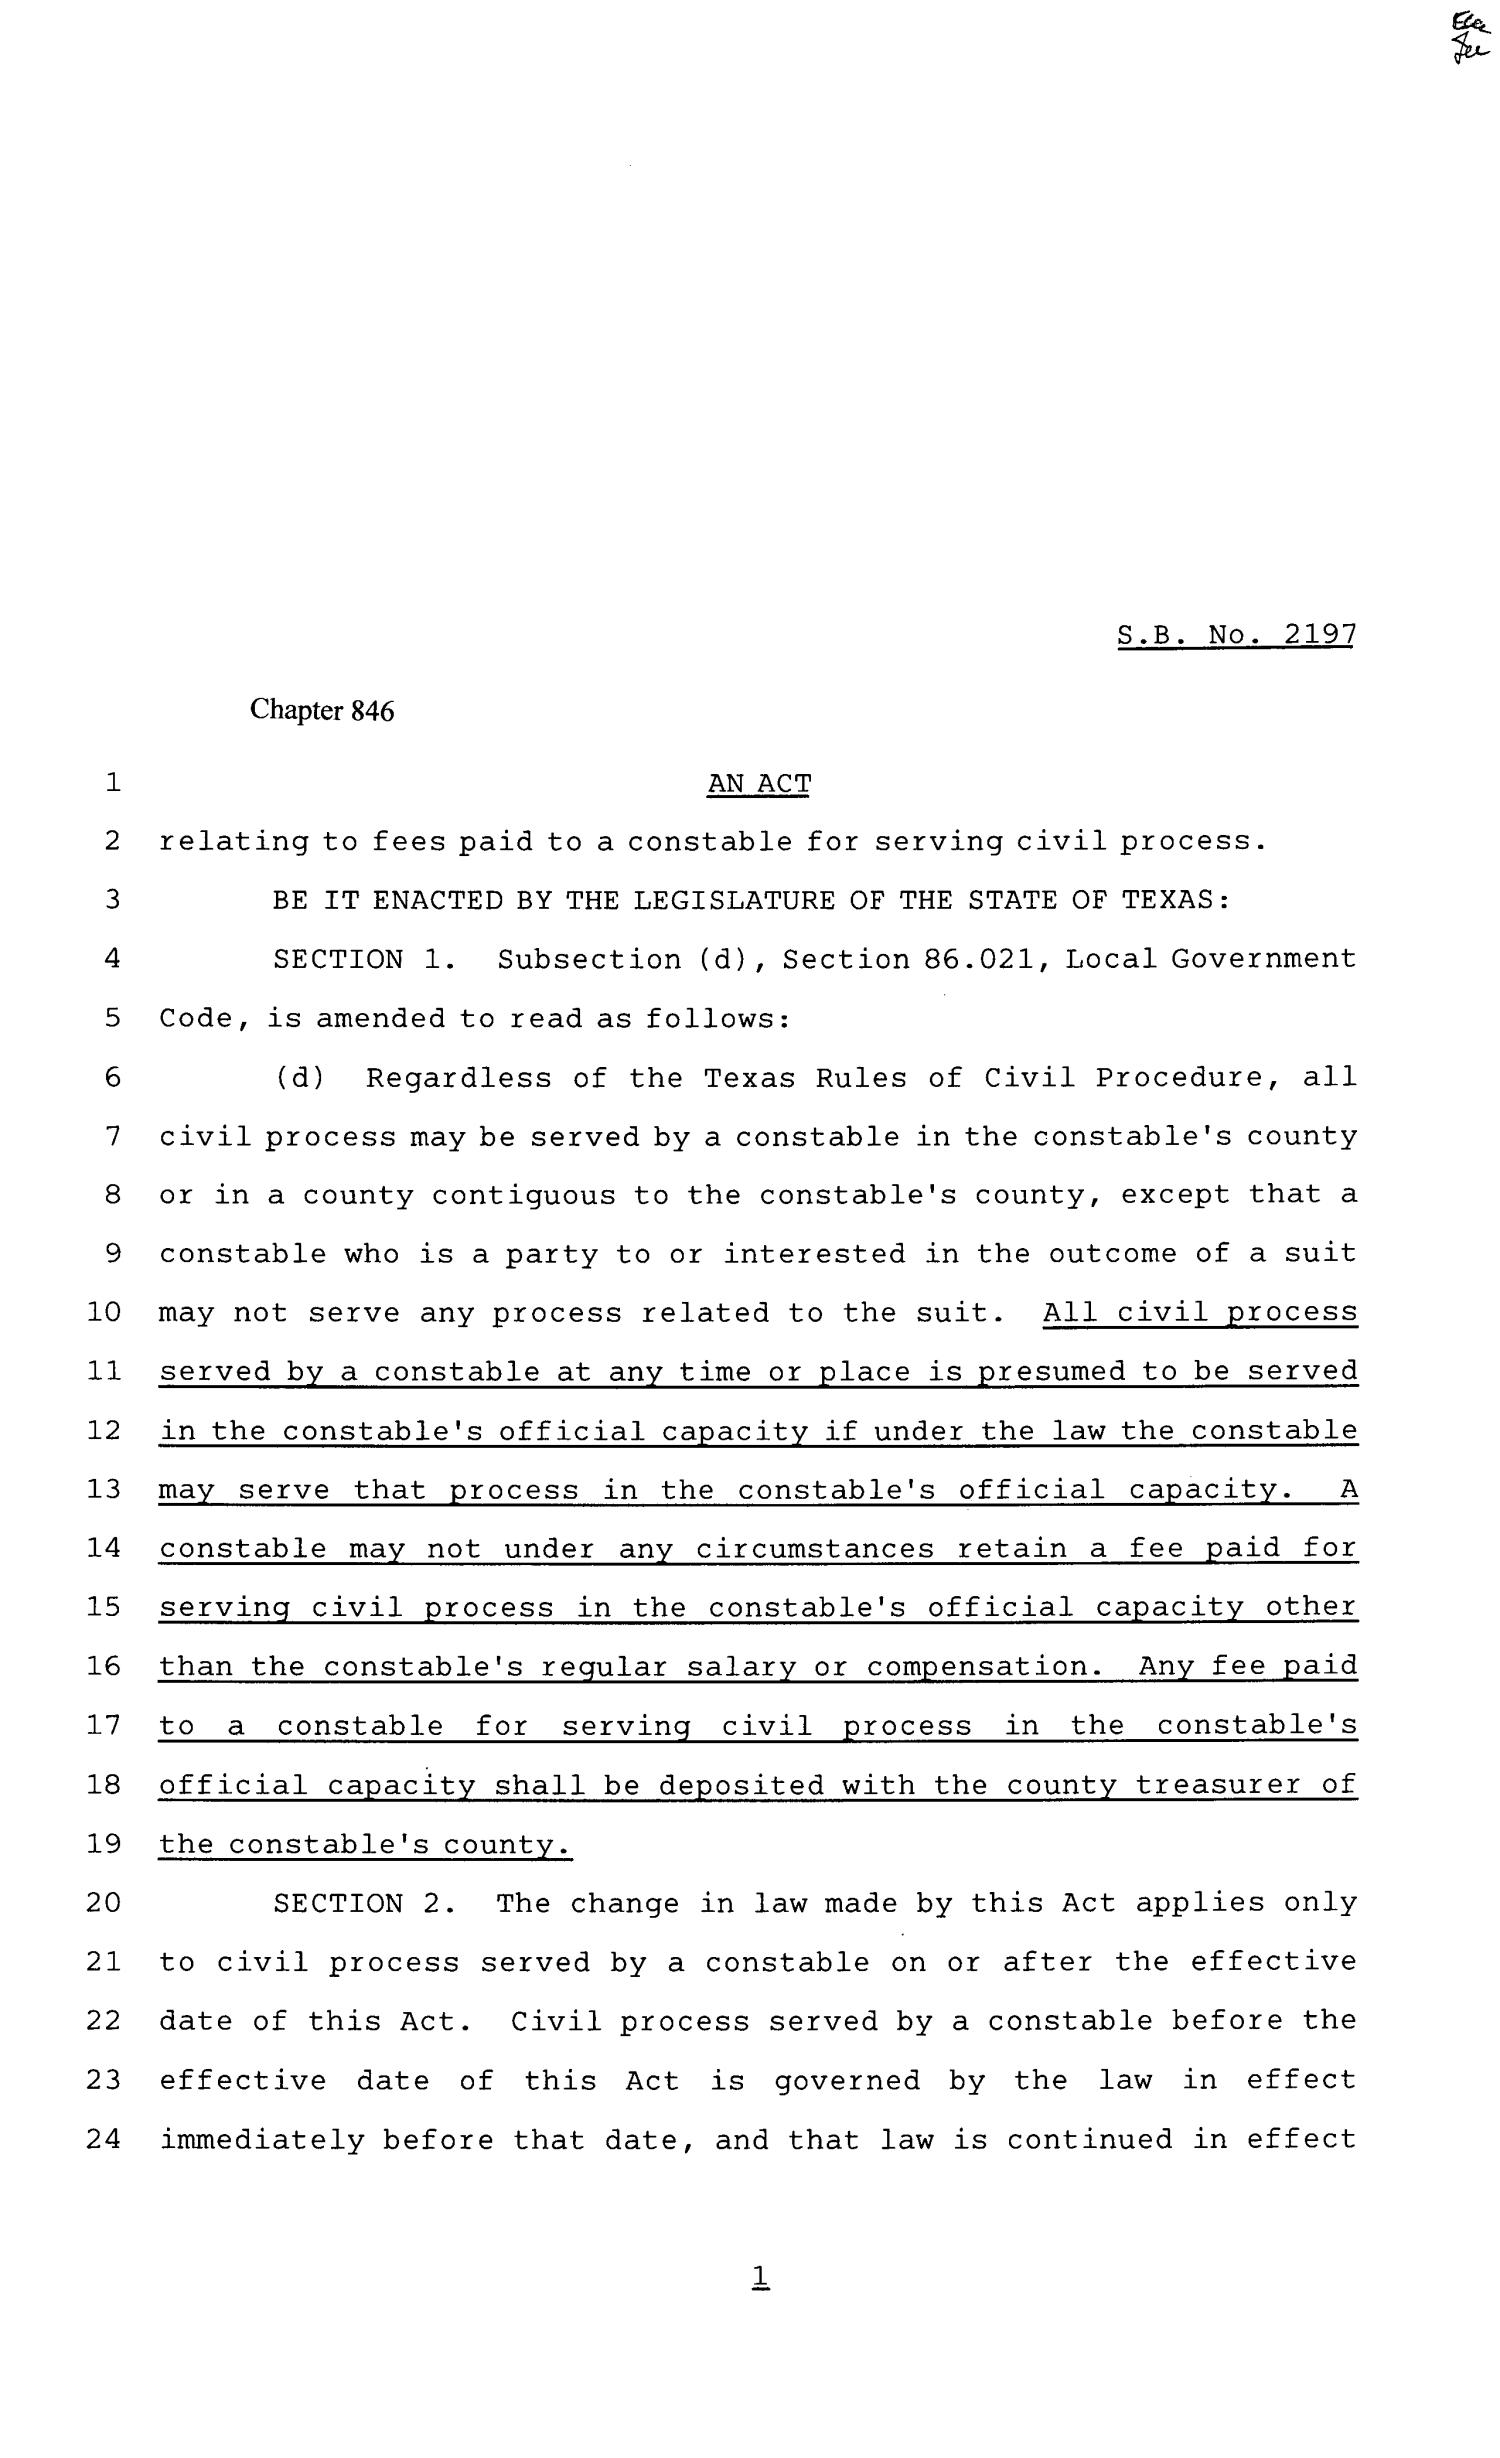 81st Texas Legislature, Senate Bill 2197, Chapter 846                                                                                                      [Sequence #]: 1 of 2